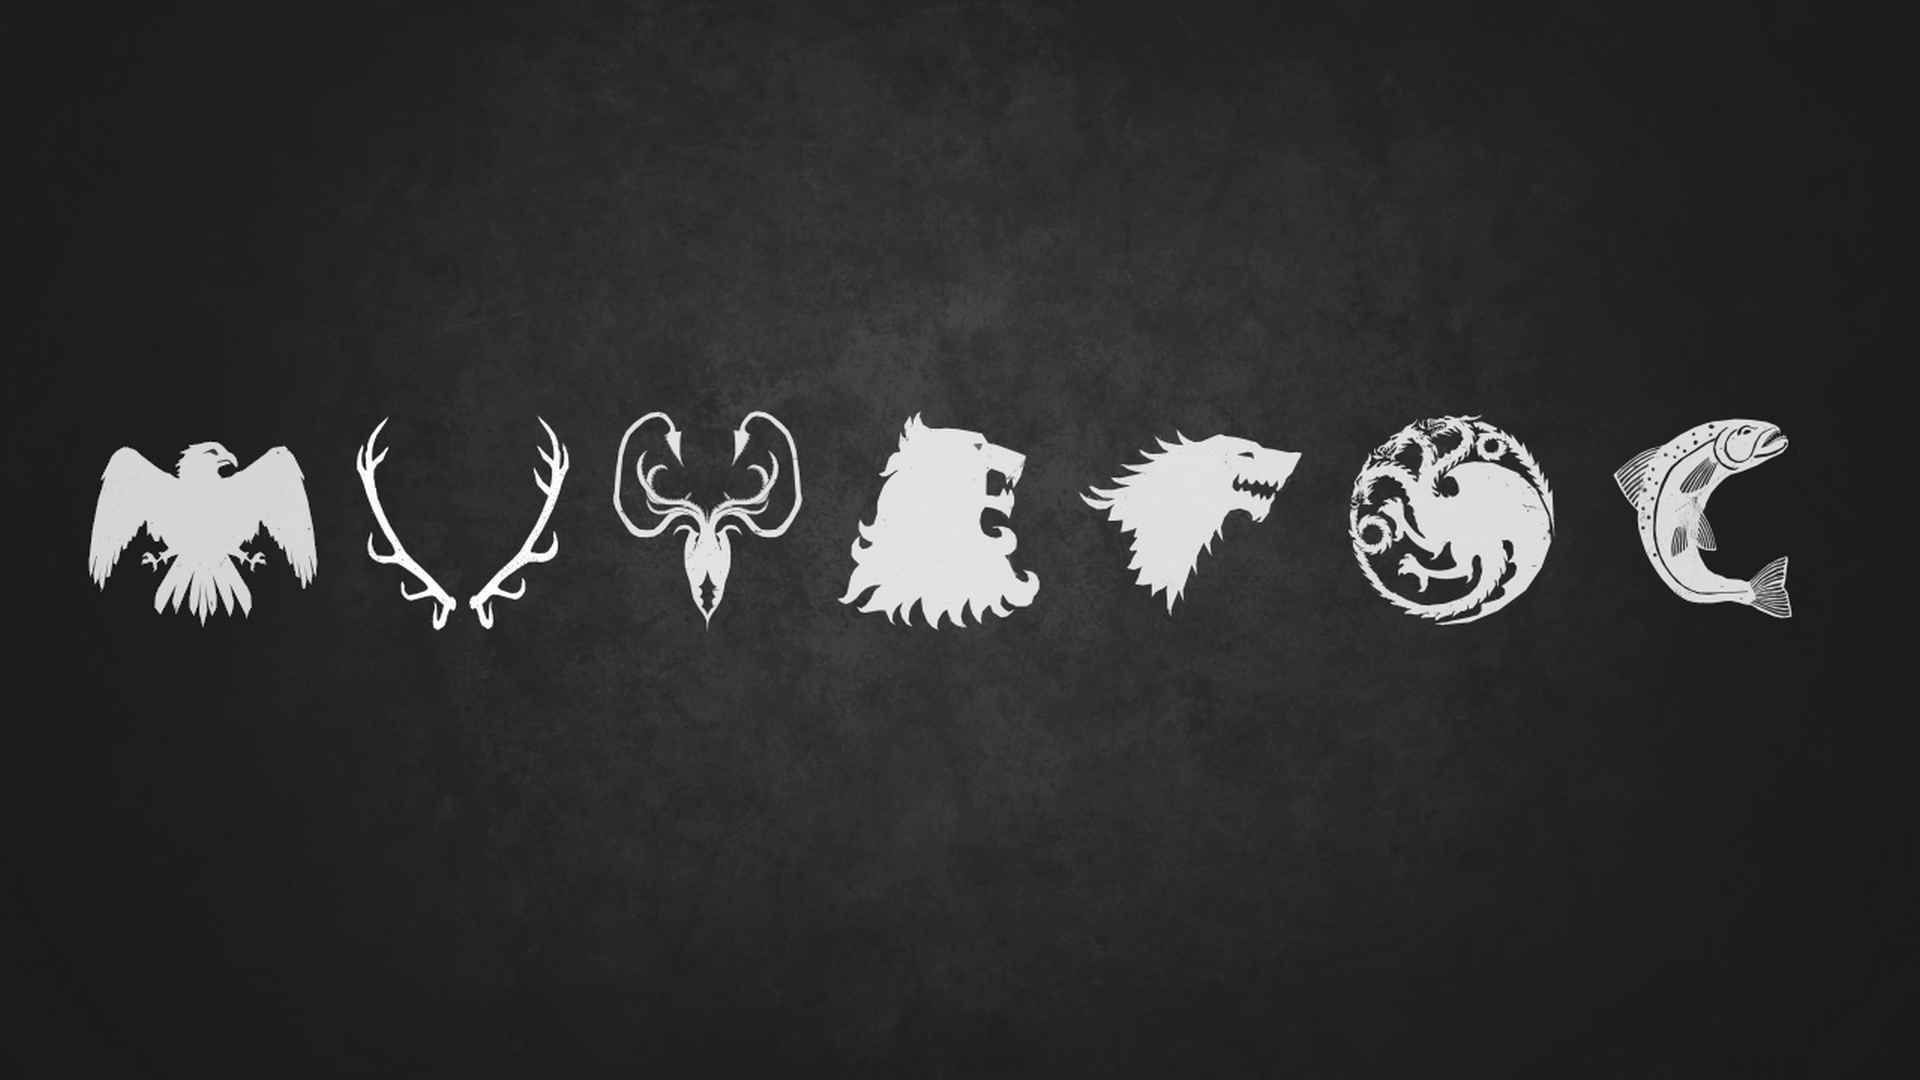 27+] Game Of Thrones Logo Wallpapers on WallpaperSafari.